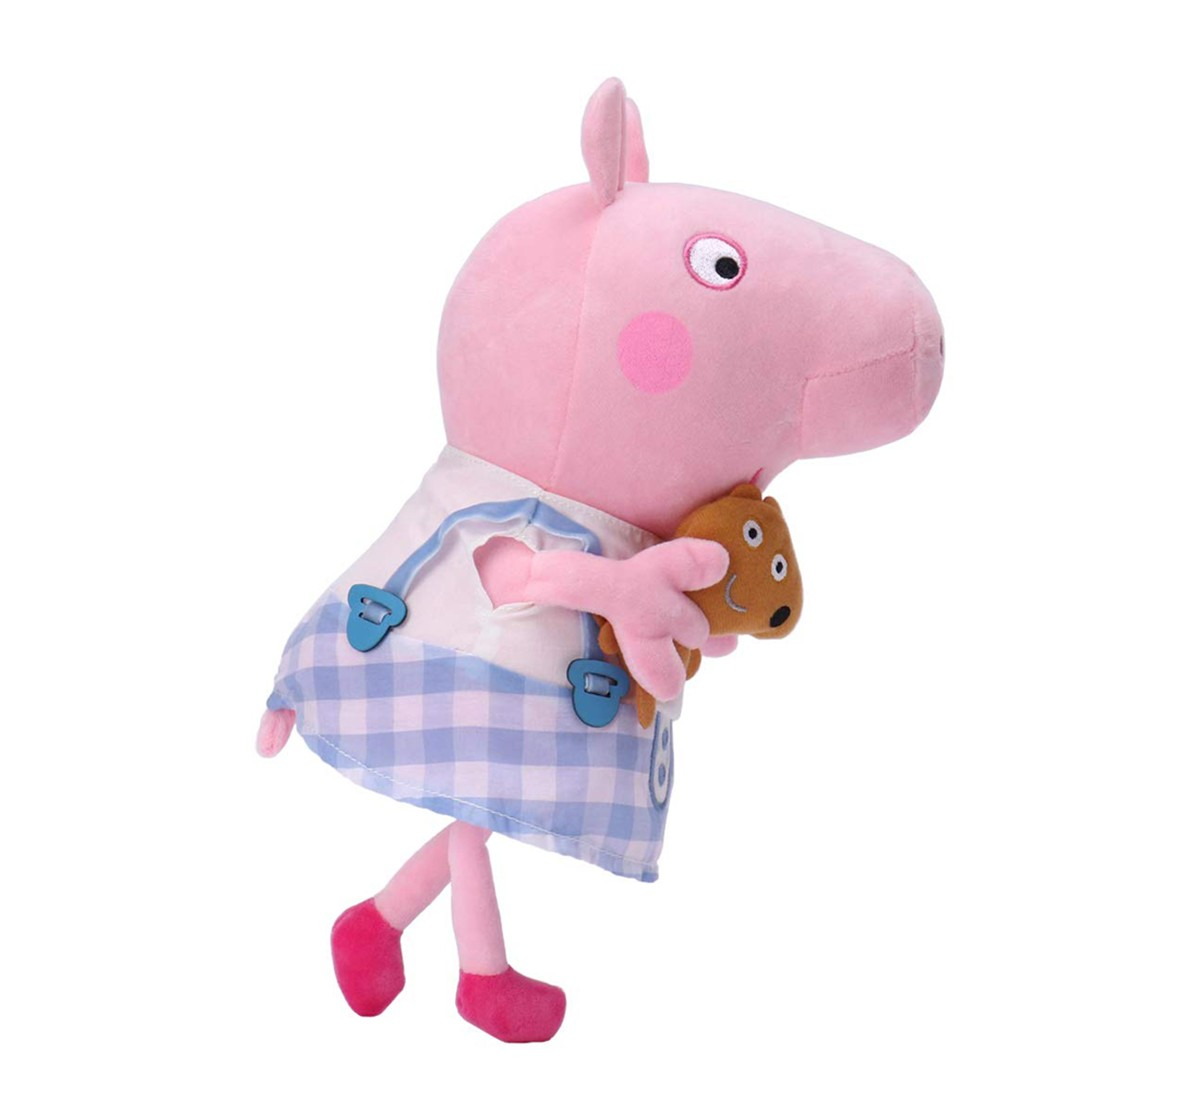 Peppa Pig In Plaid Skirt Soft Toy for Girls age 1Y+ - 30 Cm